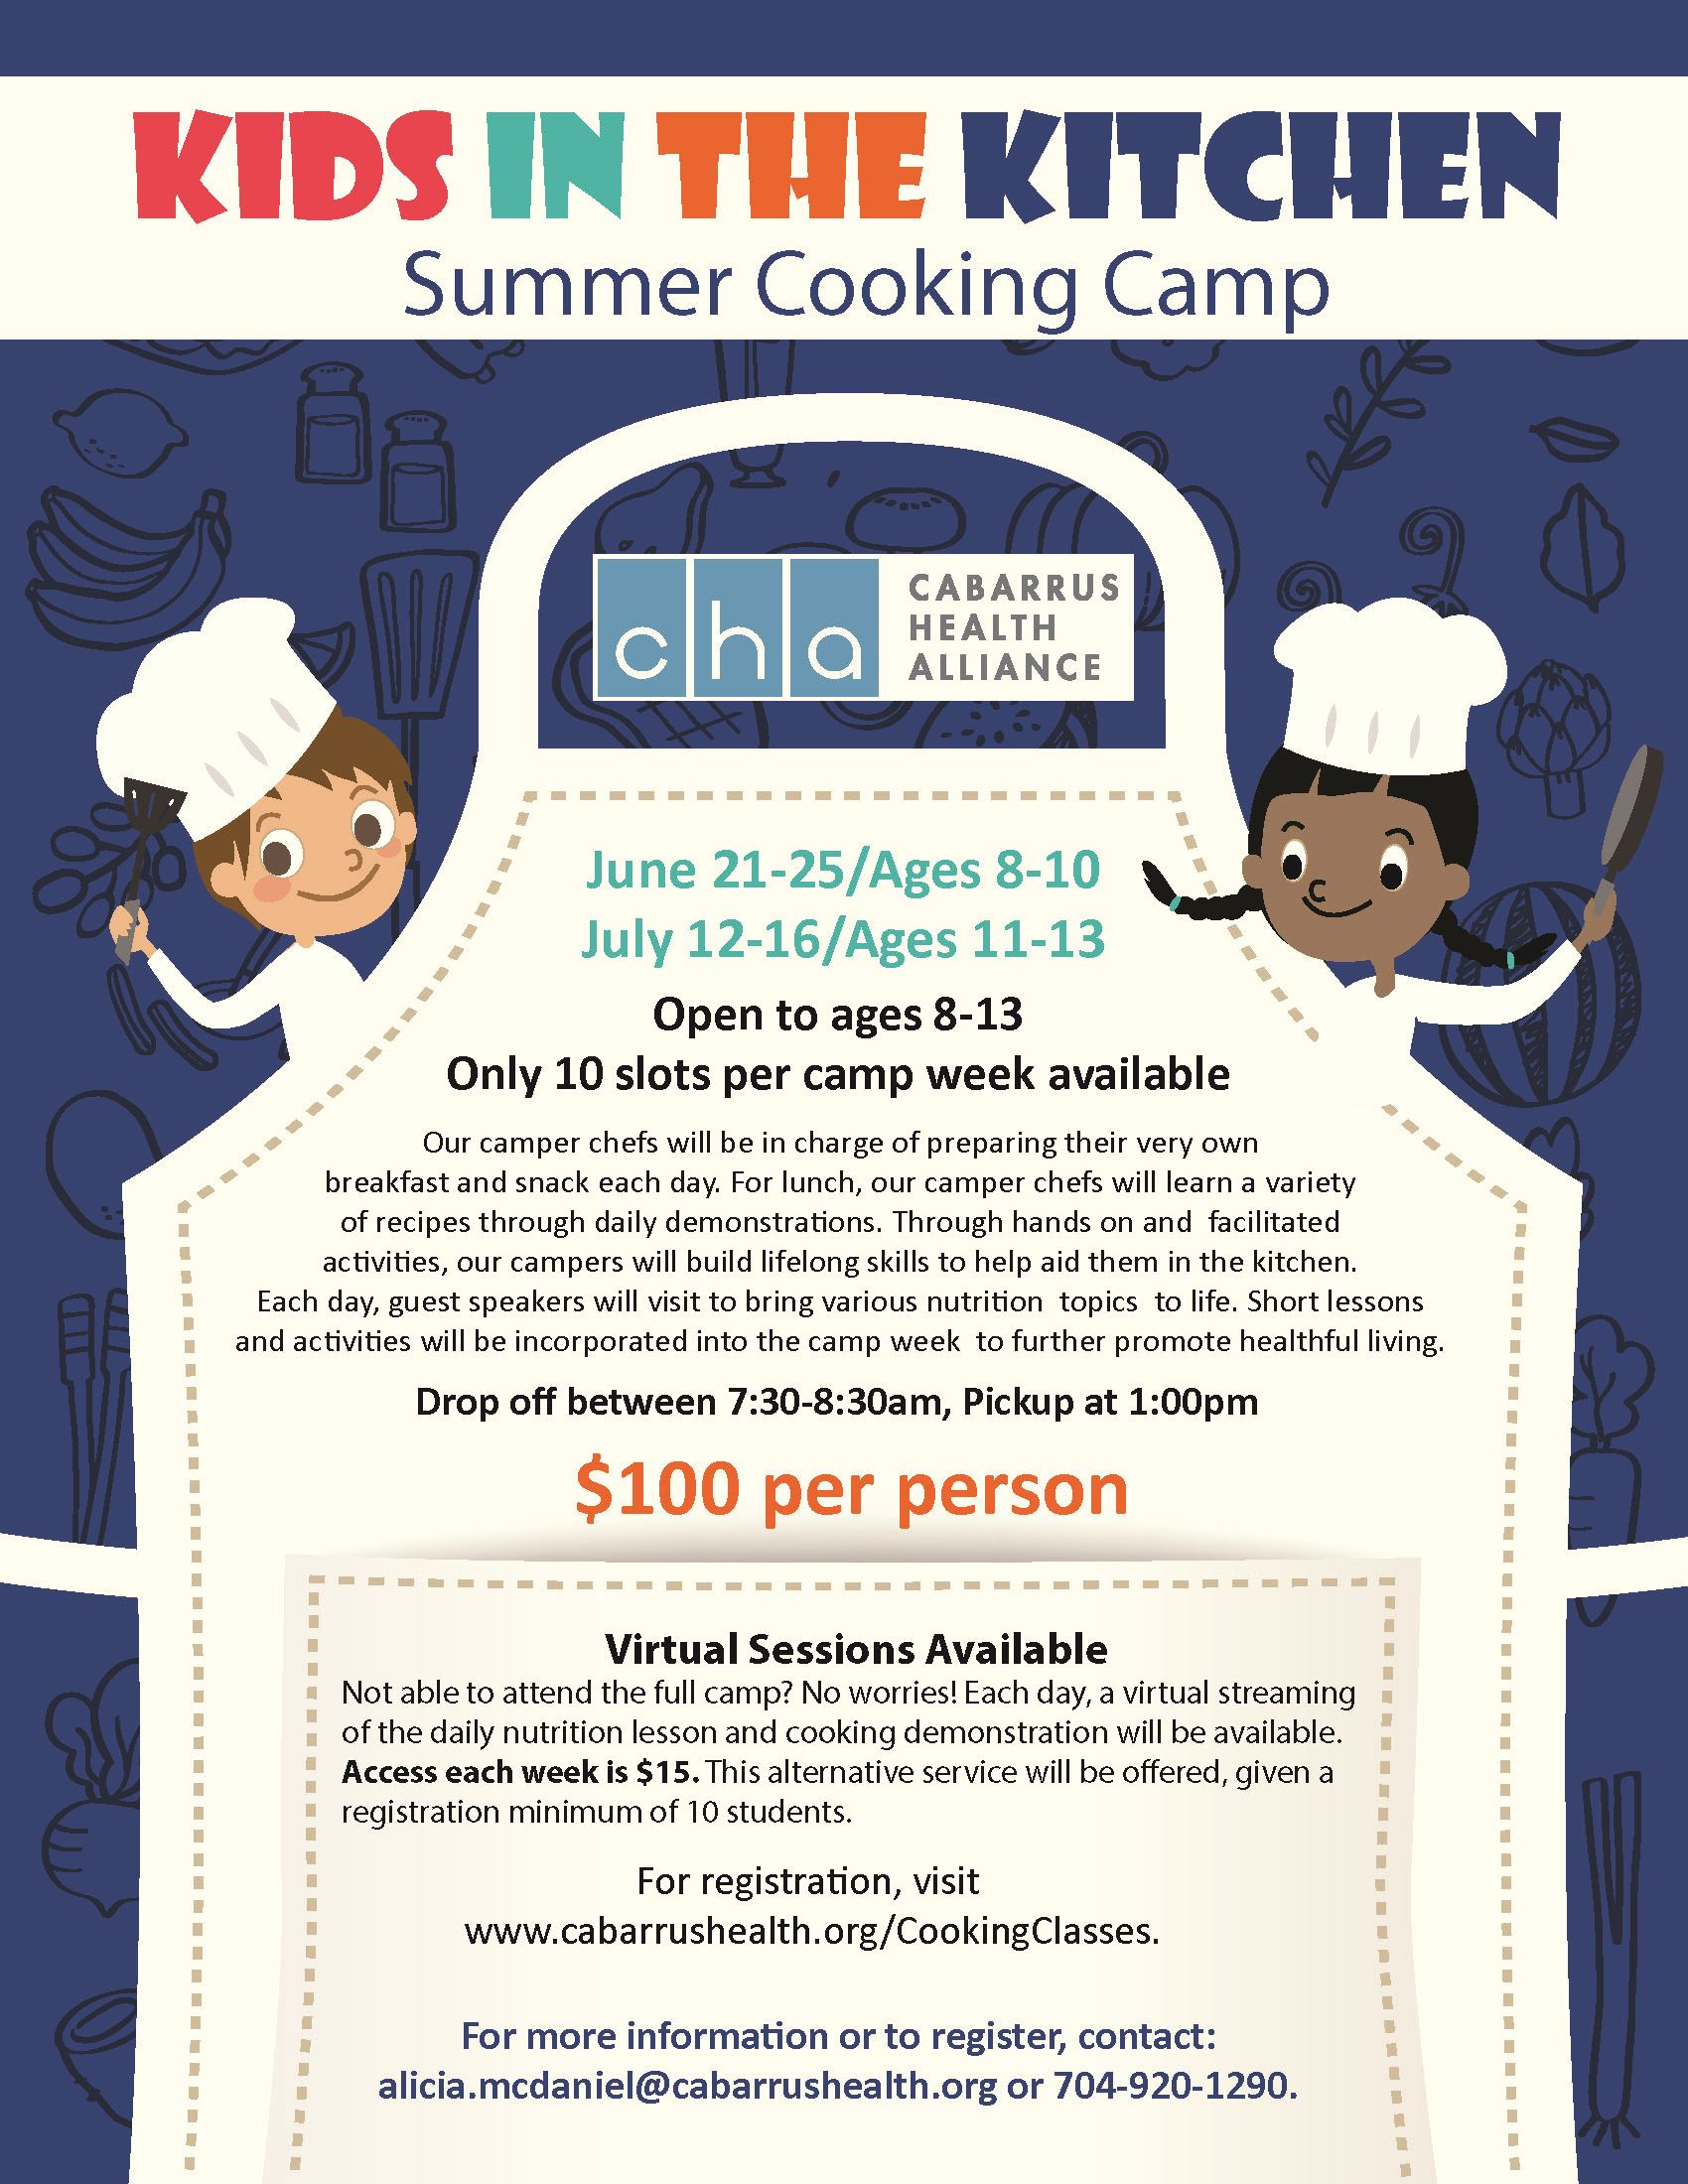 2021 Kids Camp Cooking Flyer